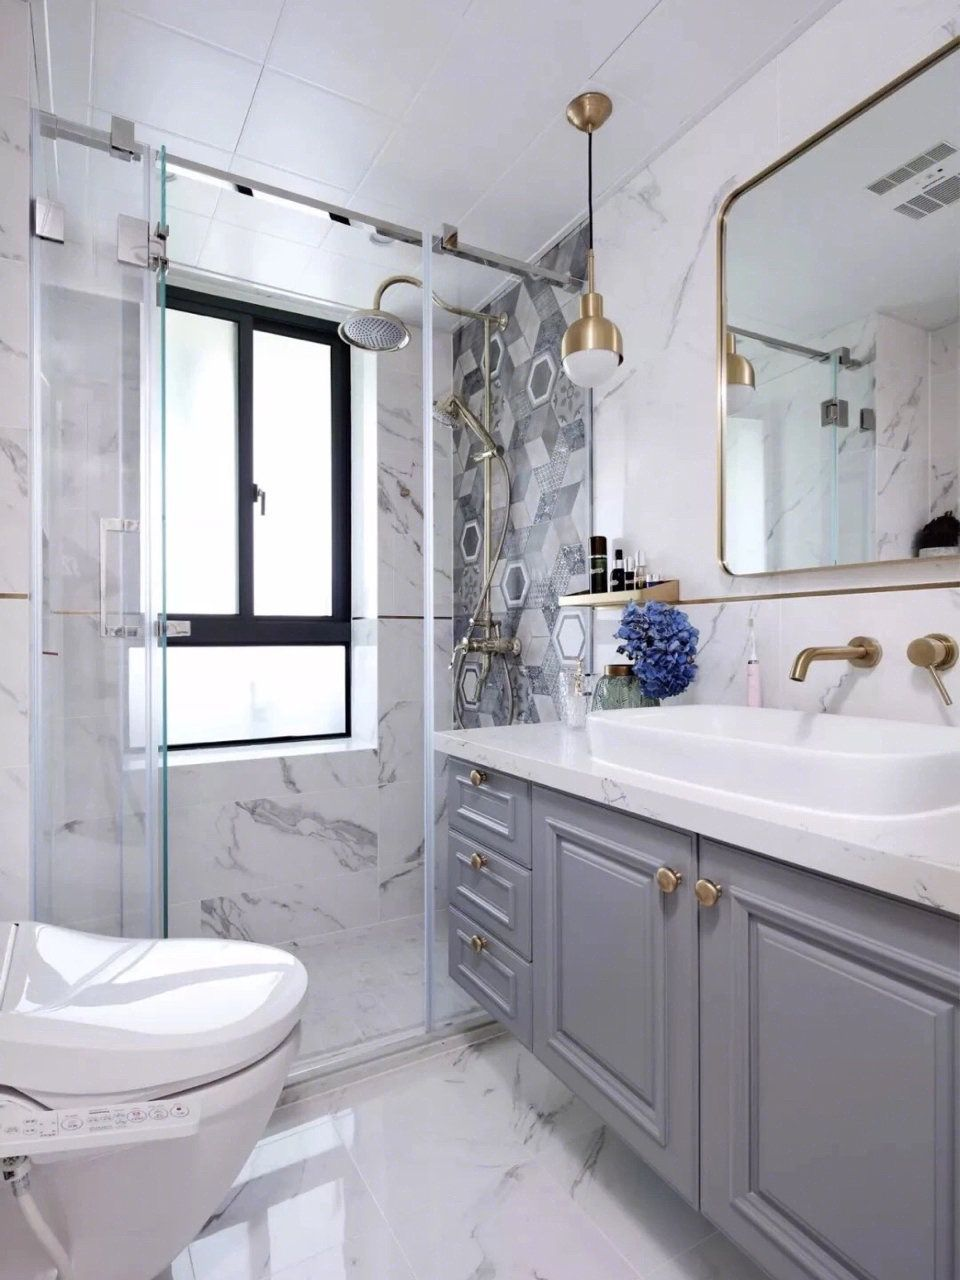 Don T Know How To Decorate A Modern Bathroom Don T Worry These Interior Decor Tips Will Help Yo In 2020 Modern Master Bathroom Bathroom Design Modern Bathroom Design